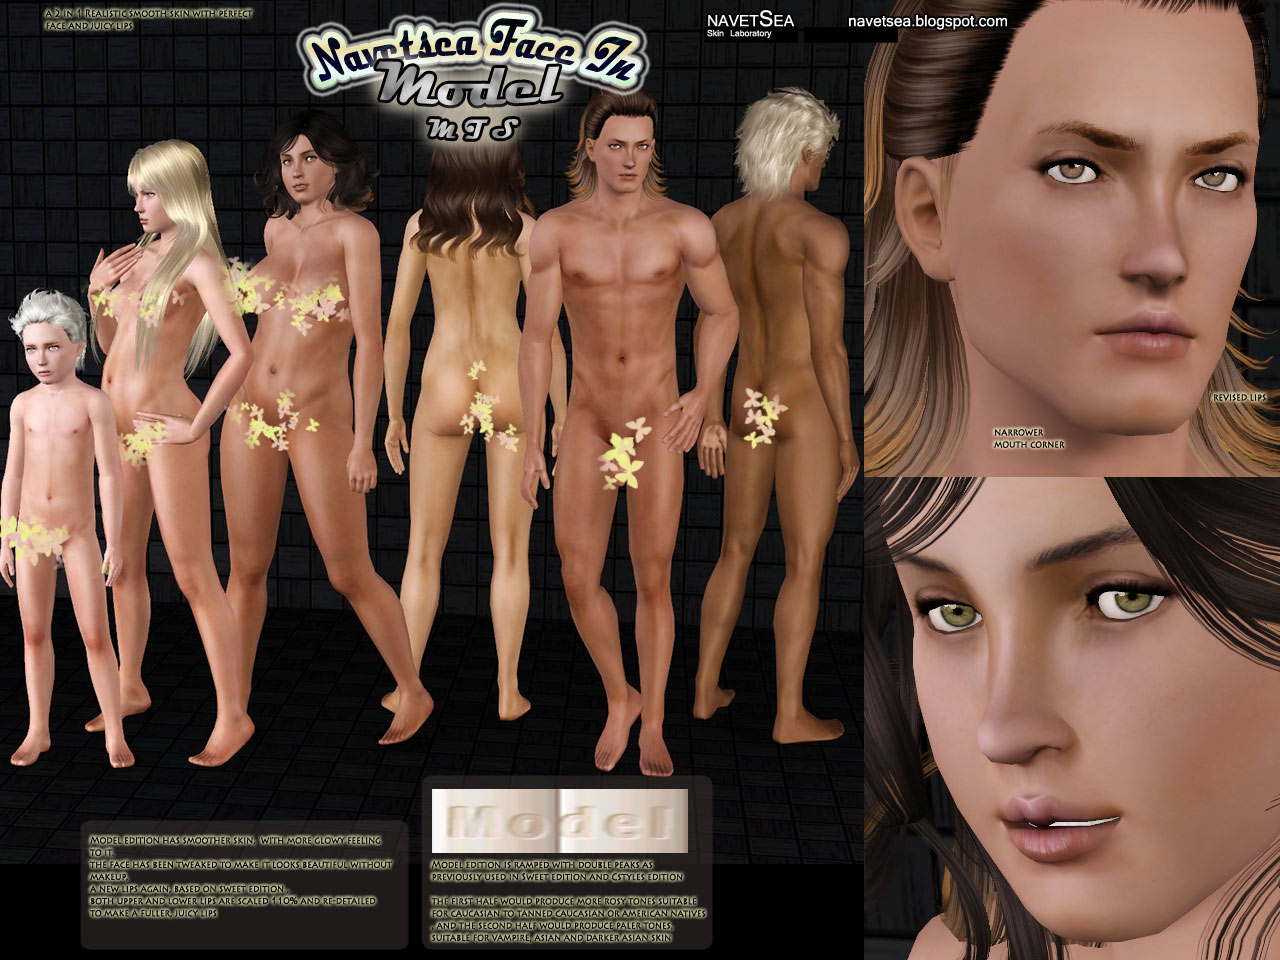 Sims 3 shemale mod sex picture